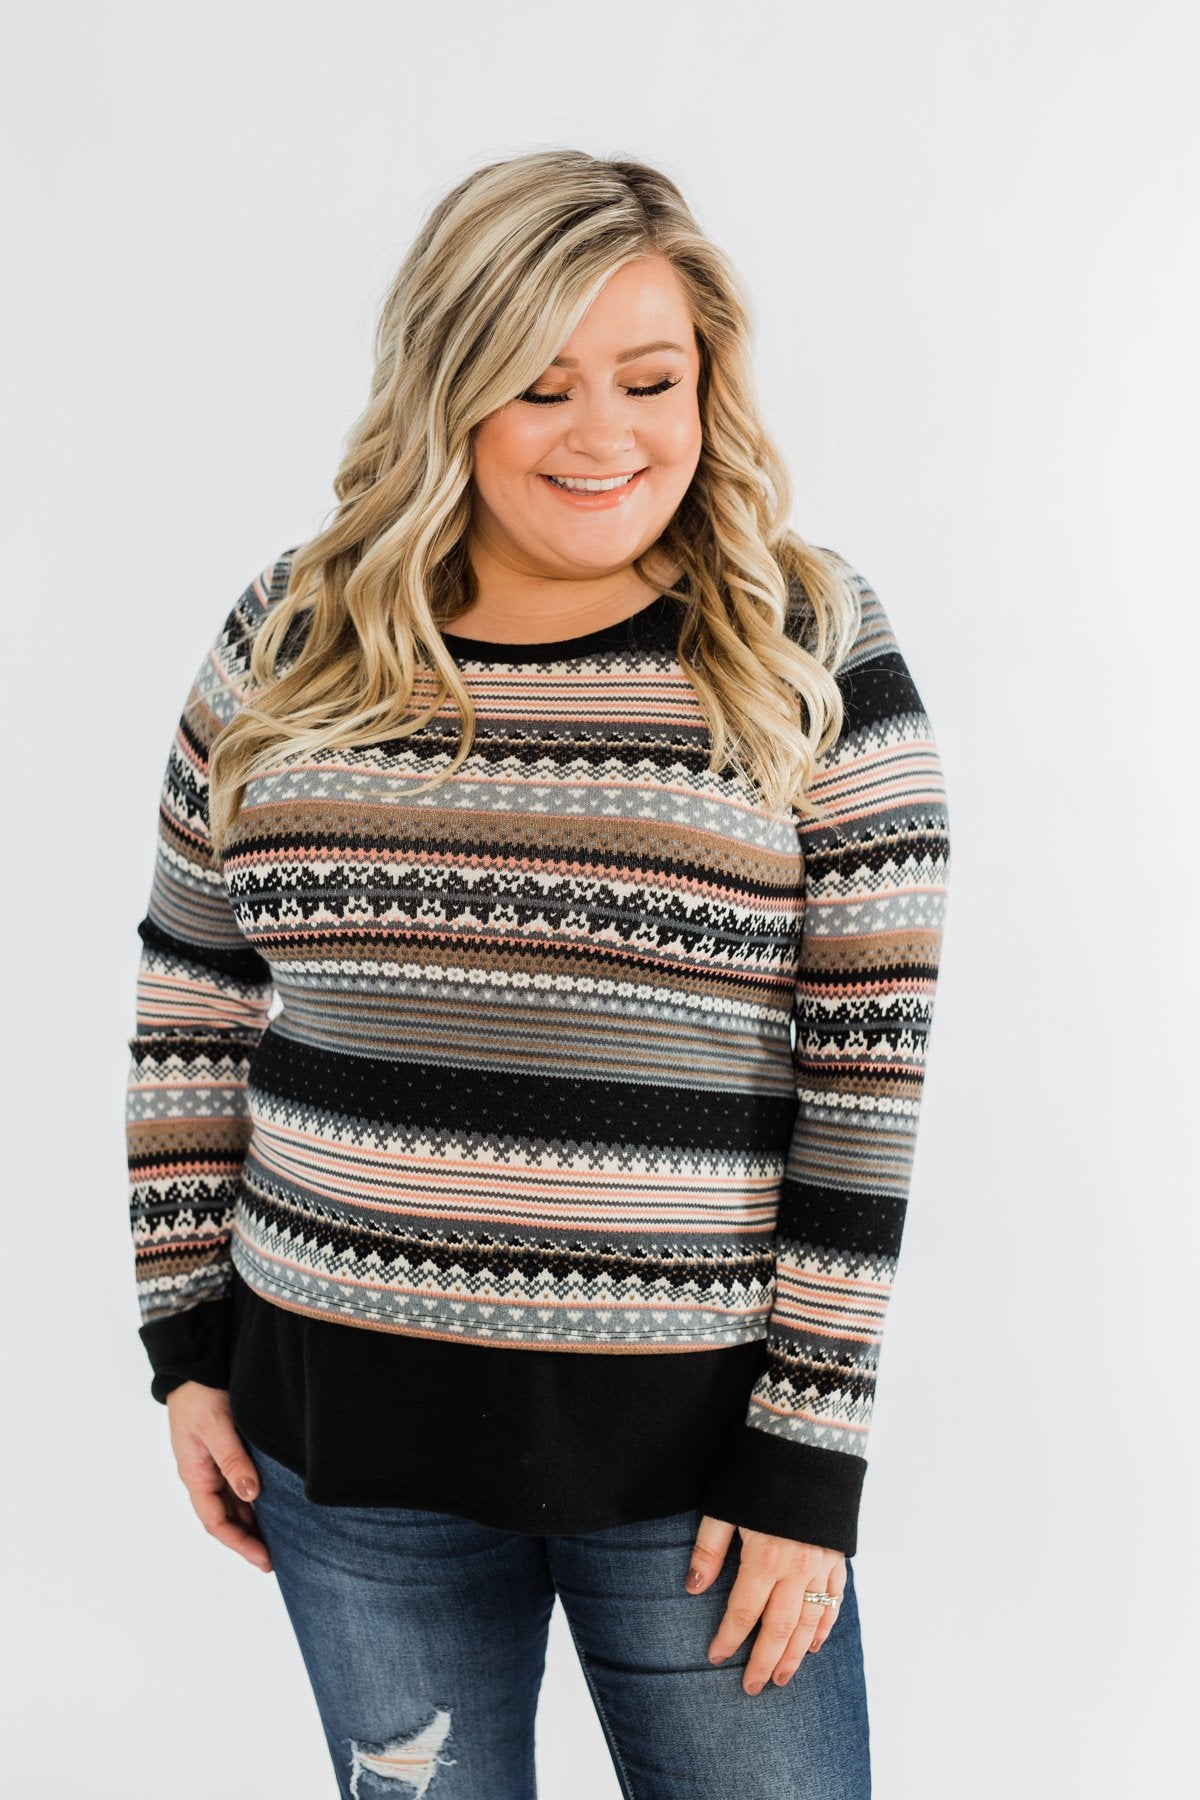 Simply Beautiful Pullover Top- Black & Pink